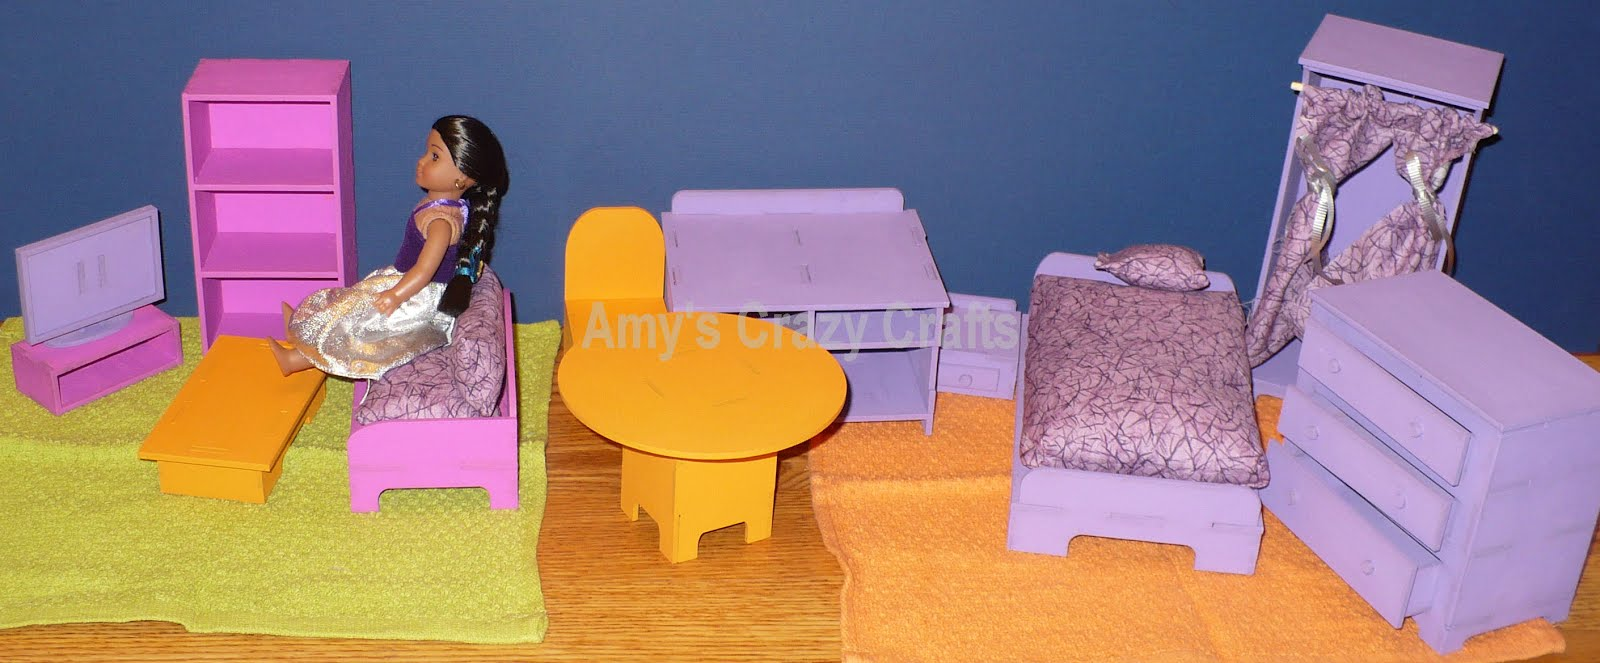 american girl doll chairs adirondack chair covers canada amy s crazy crafts 6 inch furniture mini the last few weekends i have been working on 5 for my